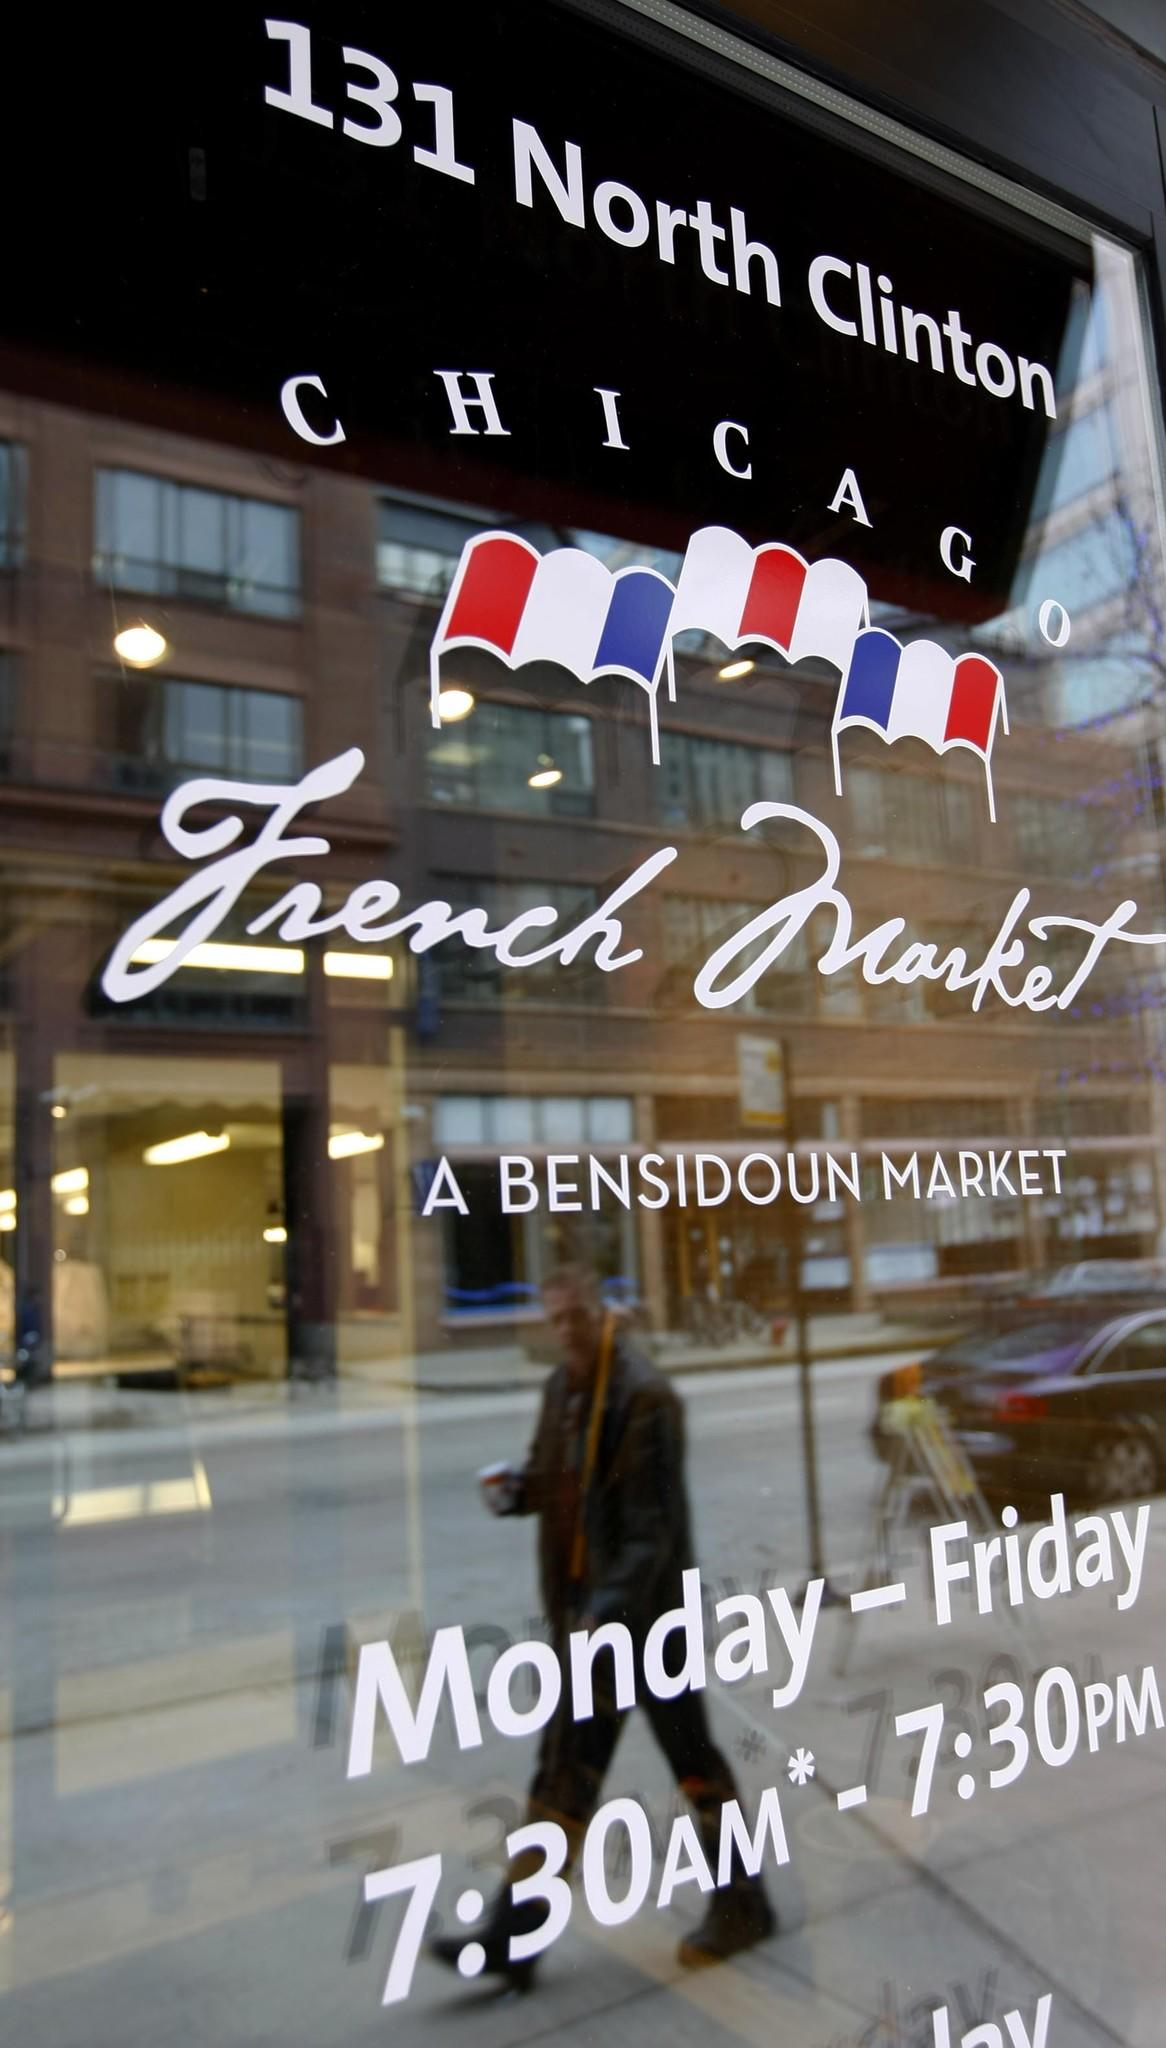 The Chicago French Market at 131 N Clinton is a nice spot for lunch in the Loop.